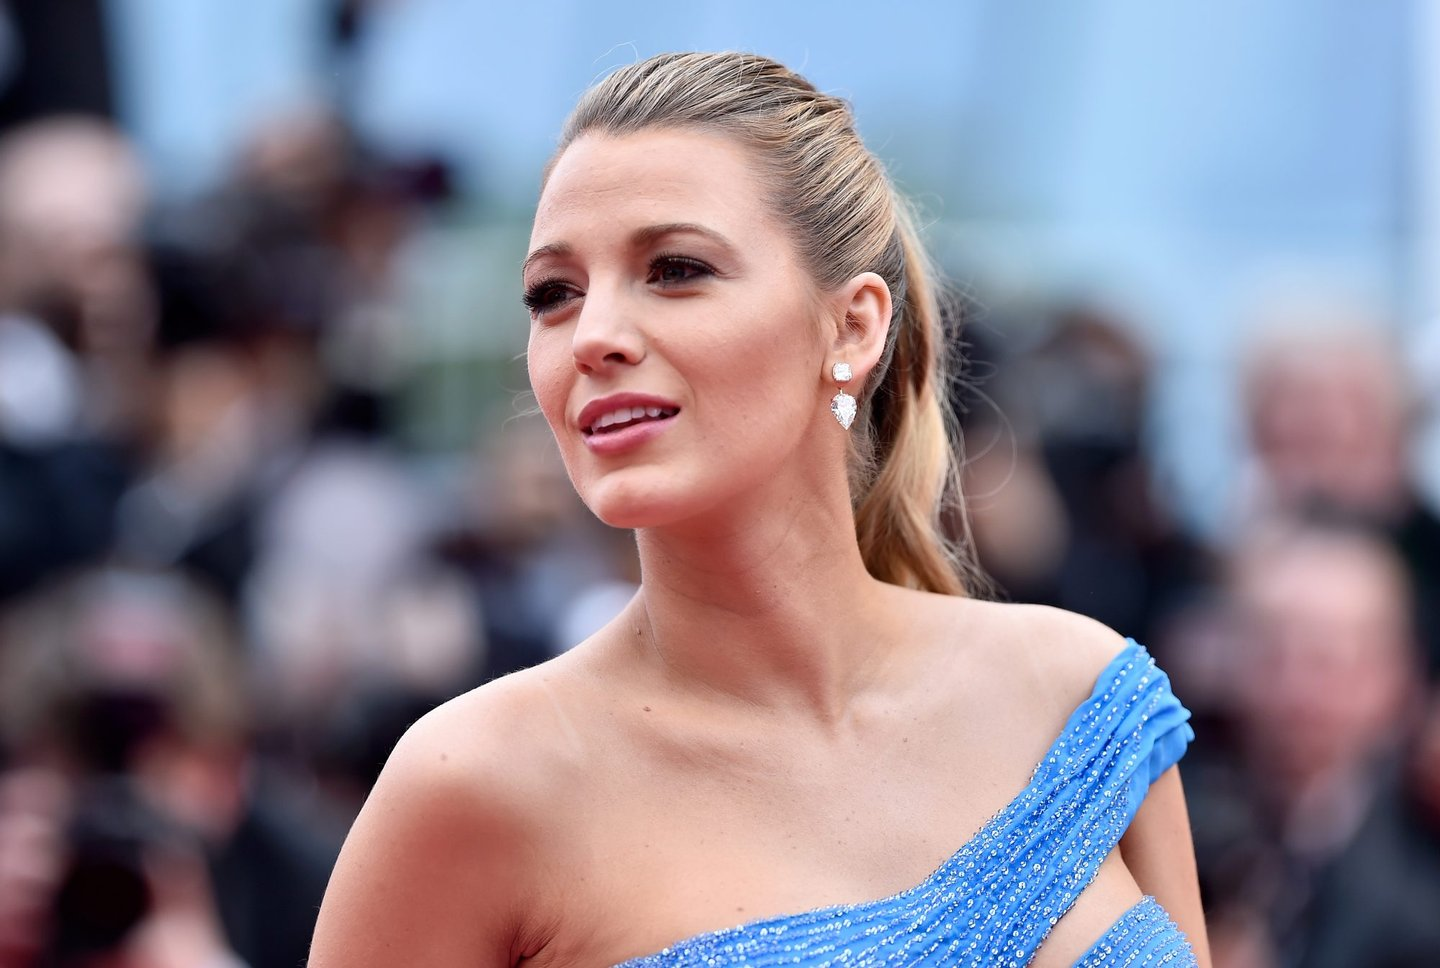 """CANNES, FRANCE - MAY 14: Blake Lively attends """"The BFG (Le Bon Gros Geant - Le BGG)"""" premiere during the 69th annual Cannes Film Festival at the Palais des Festivals on May 14, 2016 in Cannes, France. (Photo by Pascal Le Segretain/Getty Images)"""